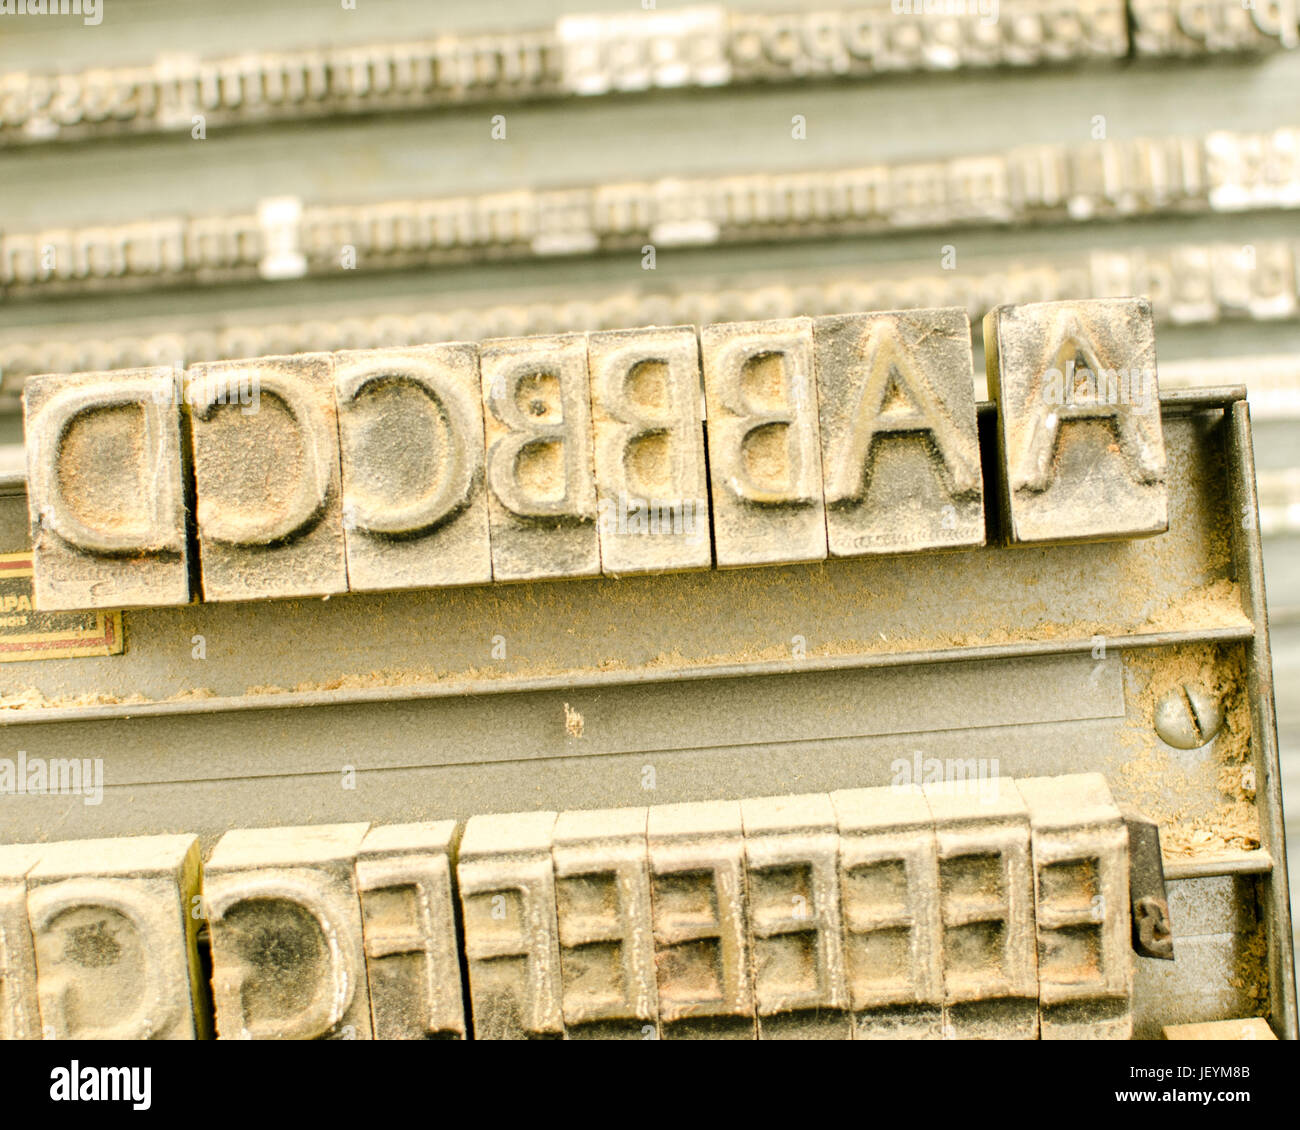 A rack of old printer's letters in a community art center. - Stock Image